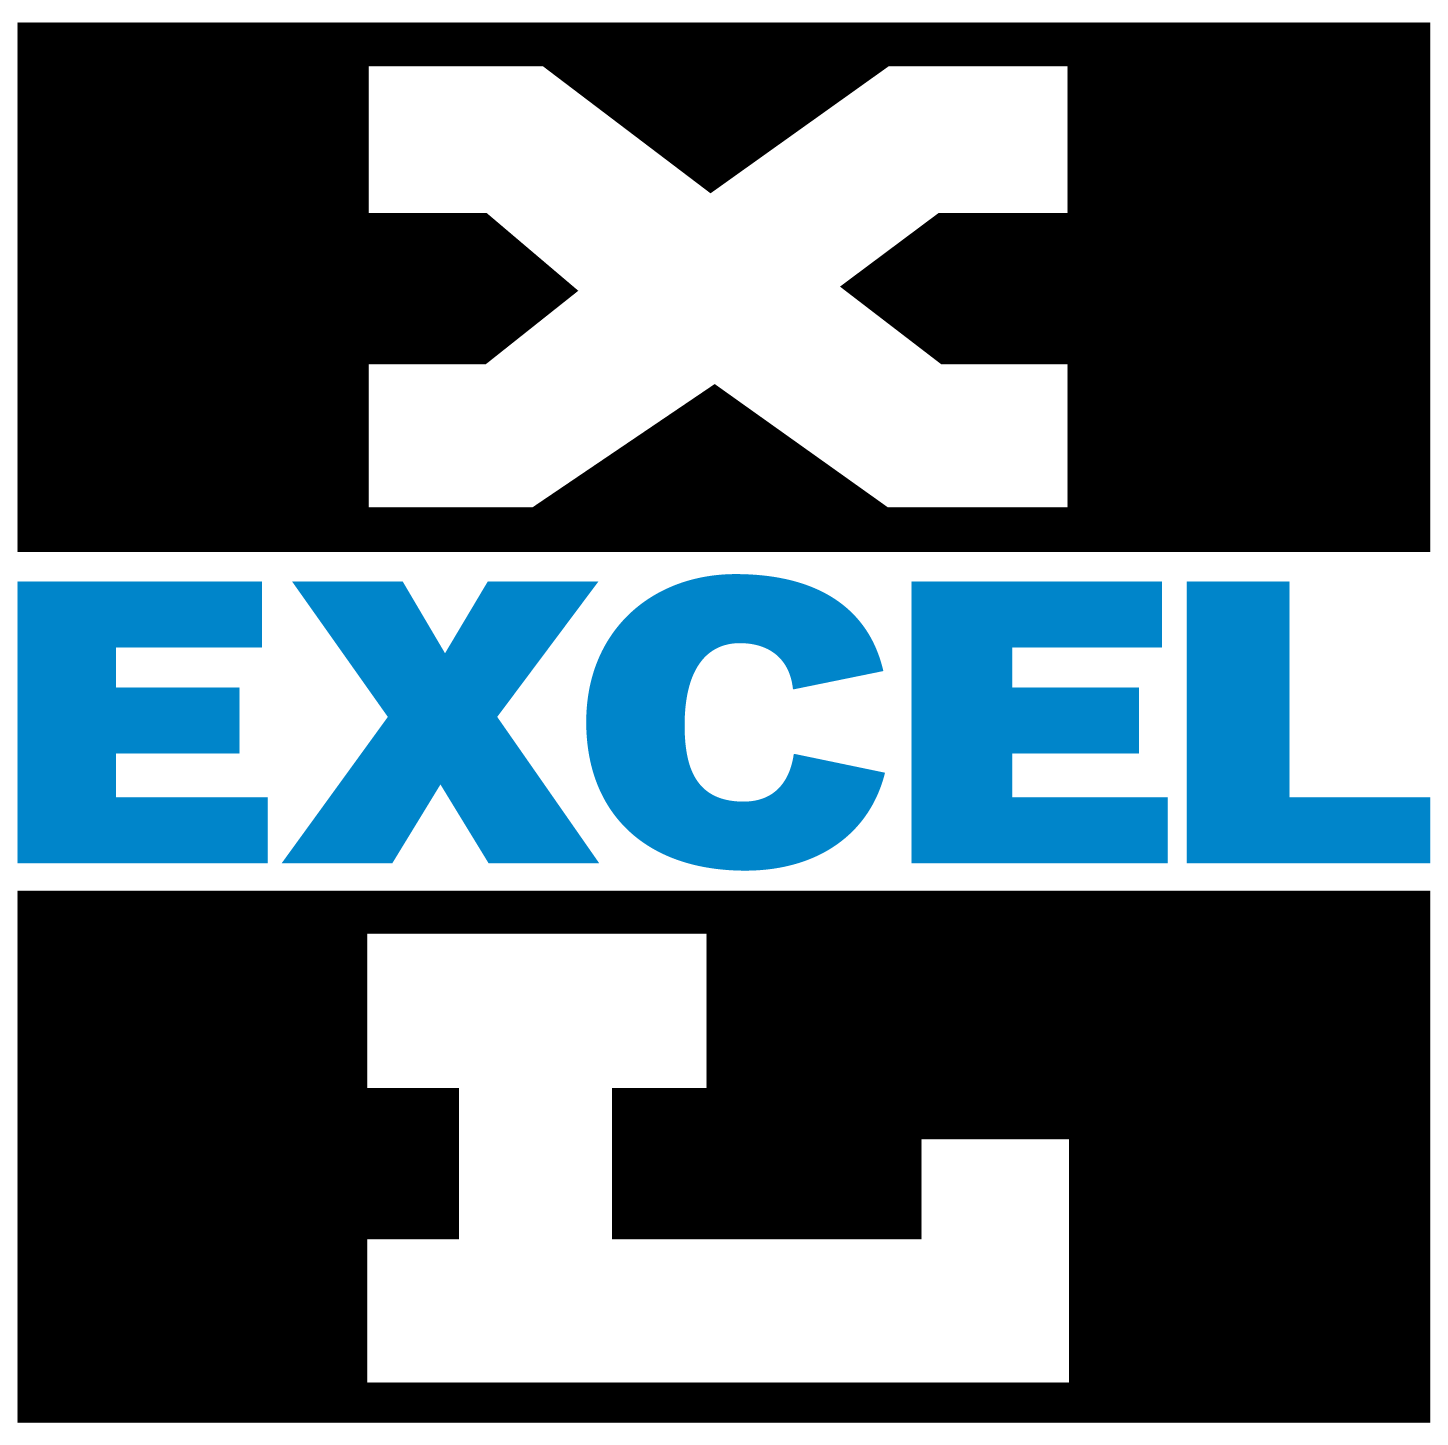 Excel Dryer Logo